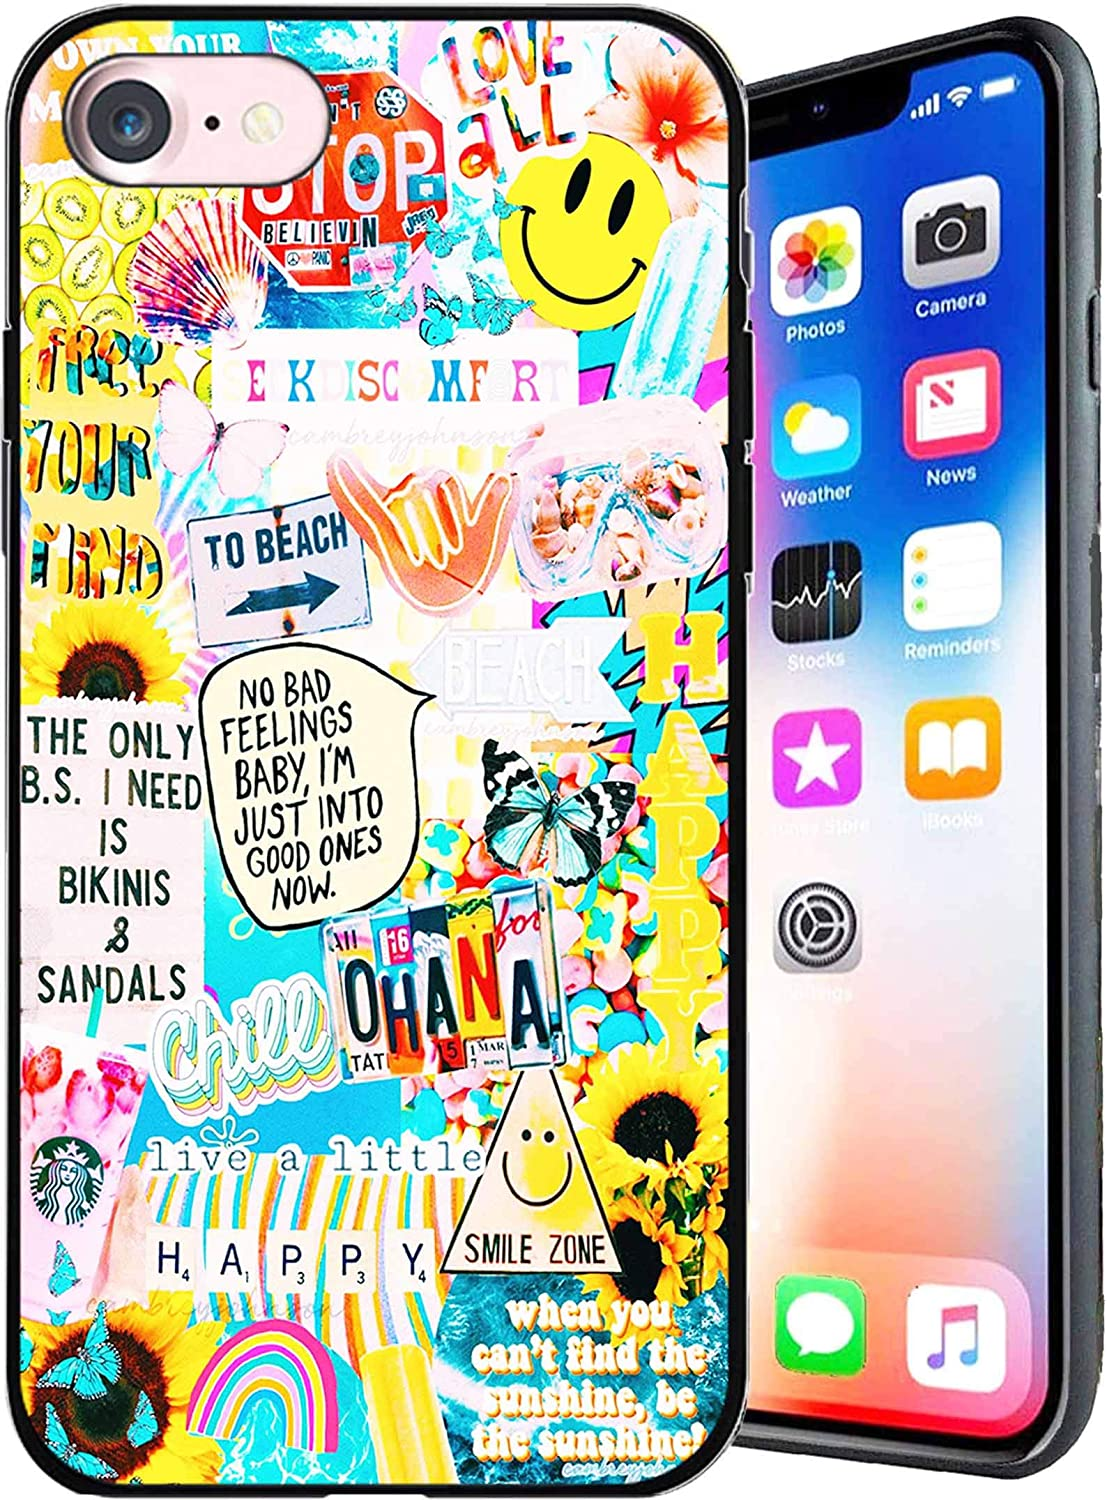 Designed for iPhone 7/8/SE 2020 Case Stickers Smiling Face Design Anti-Scratch Shockproof Case Unfading Coloring Premium TPU Slim Fit Soft Cover Compatible with iPhone 7/8/SE 2020 4.7 inch (Stickers)